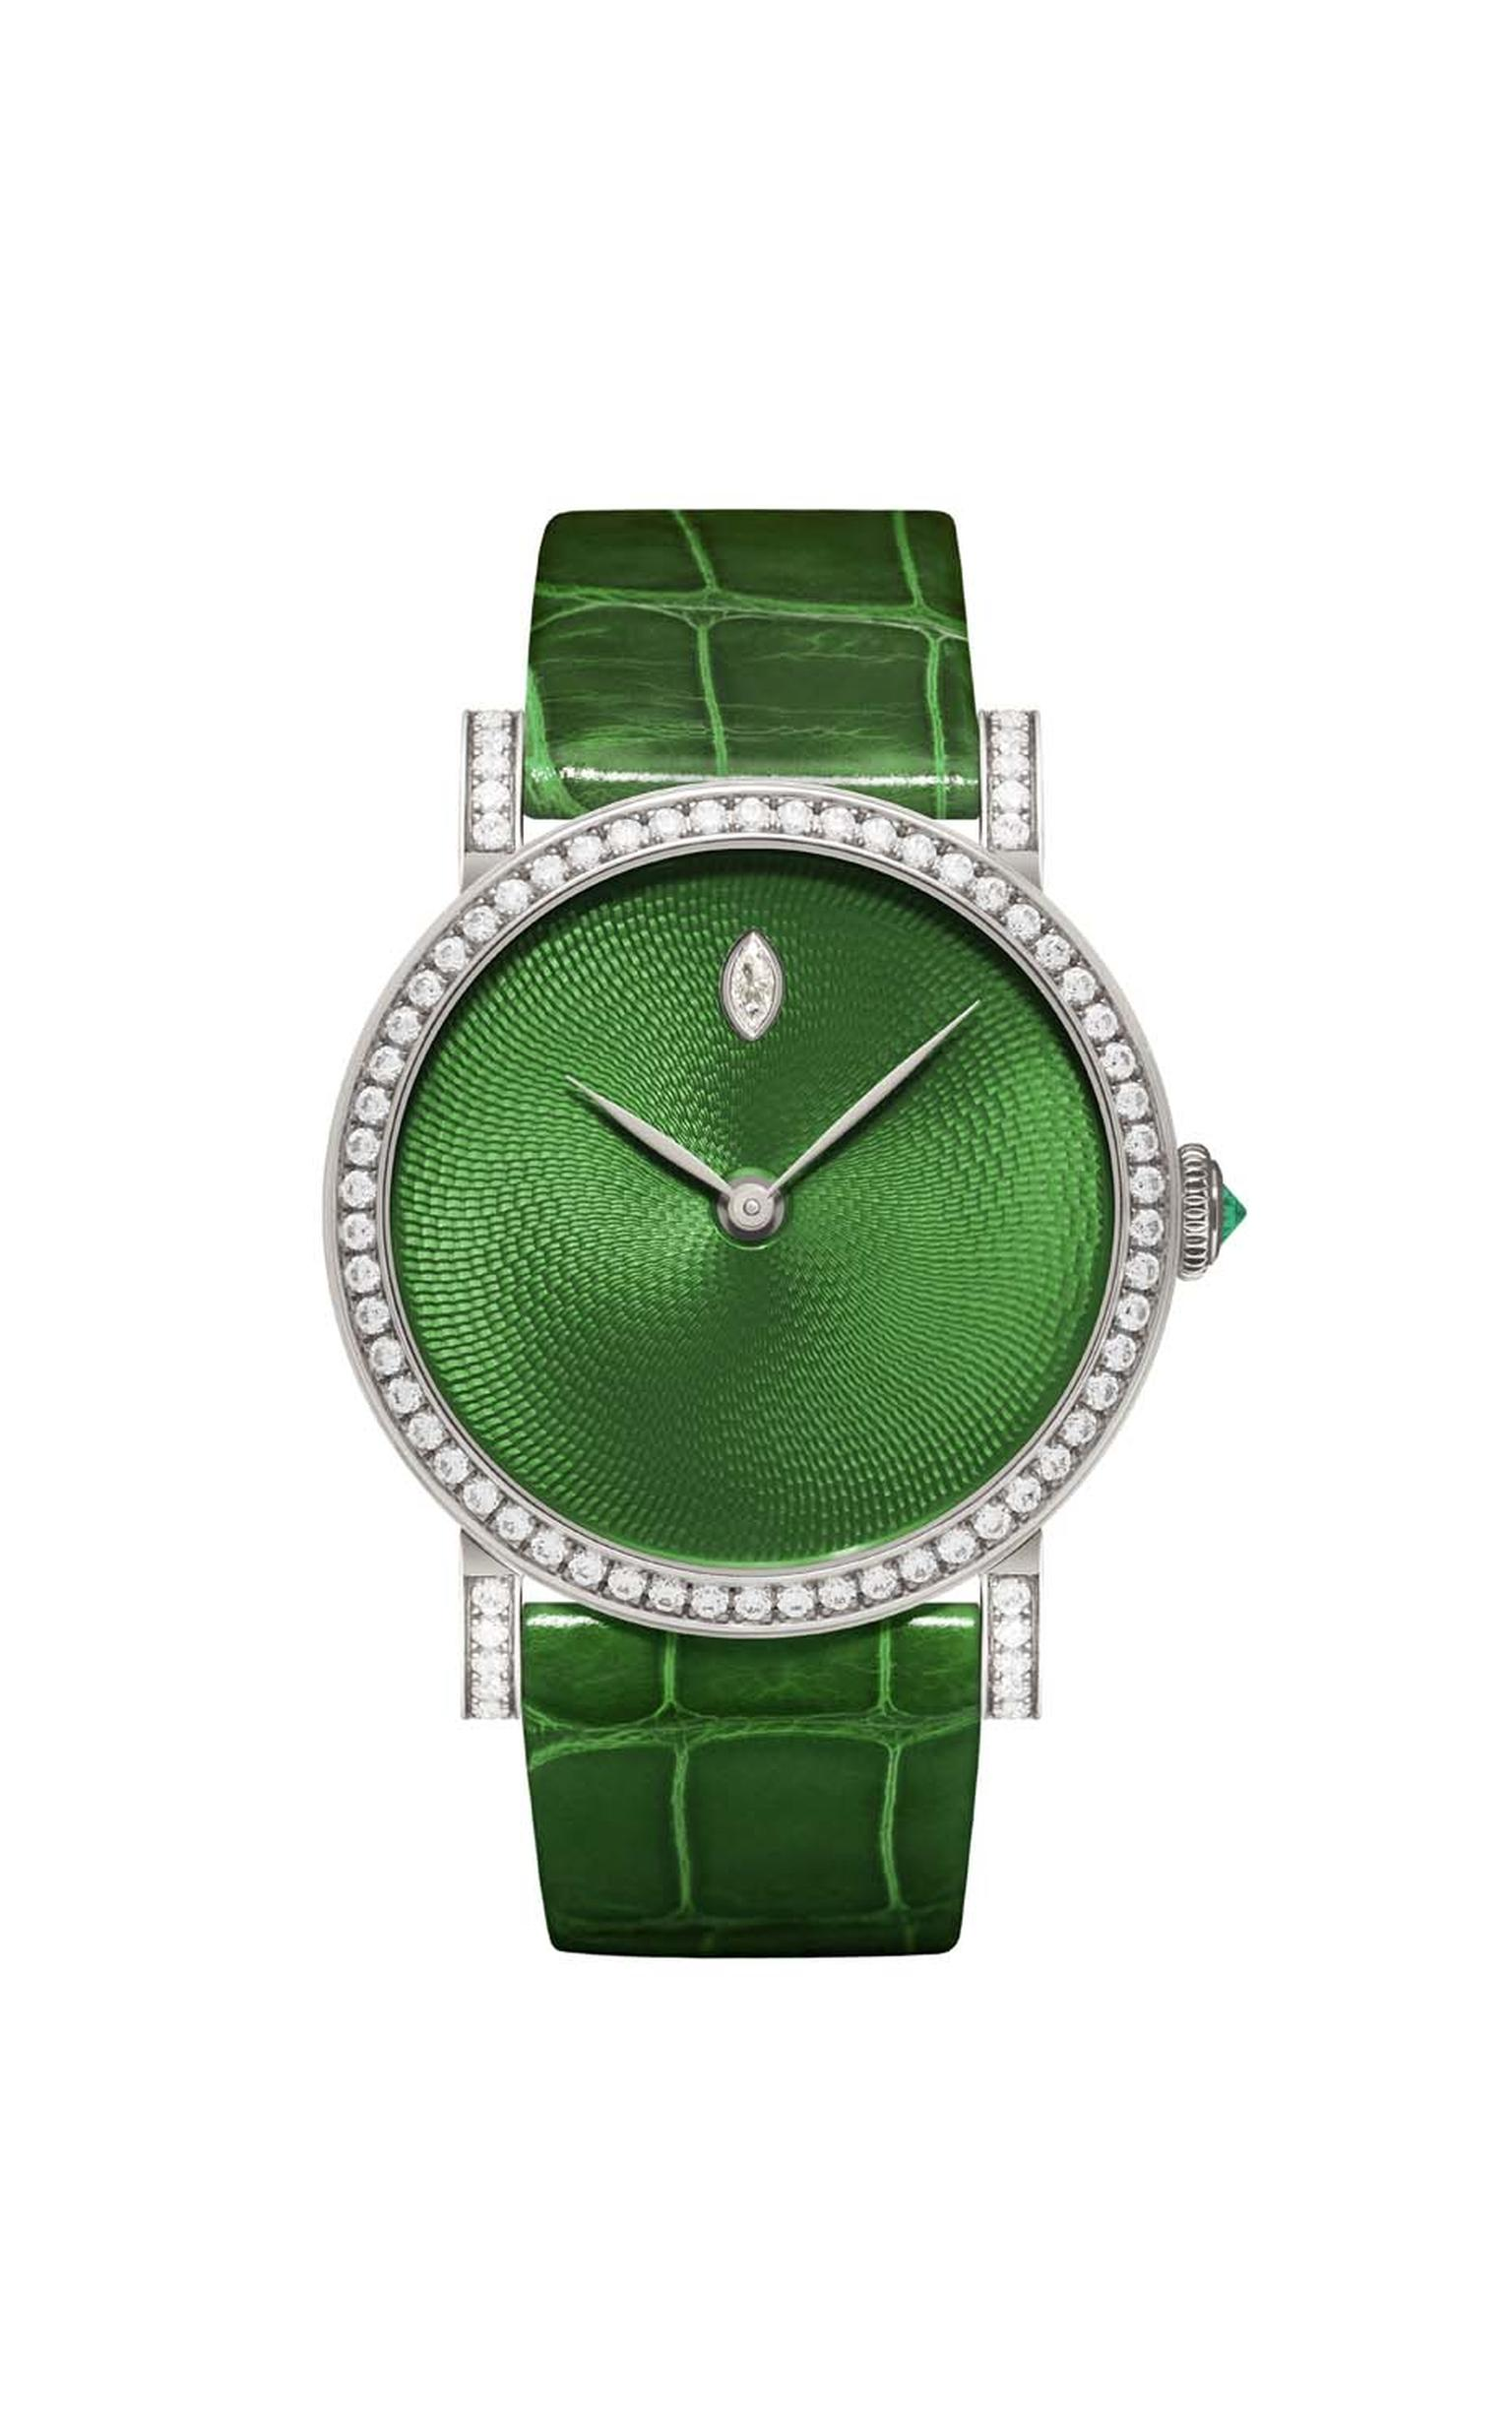 DeLaneau's one-of-a-kind Rondo Translucent Green watch